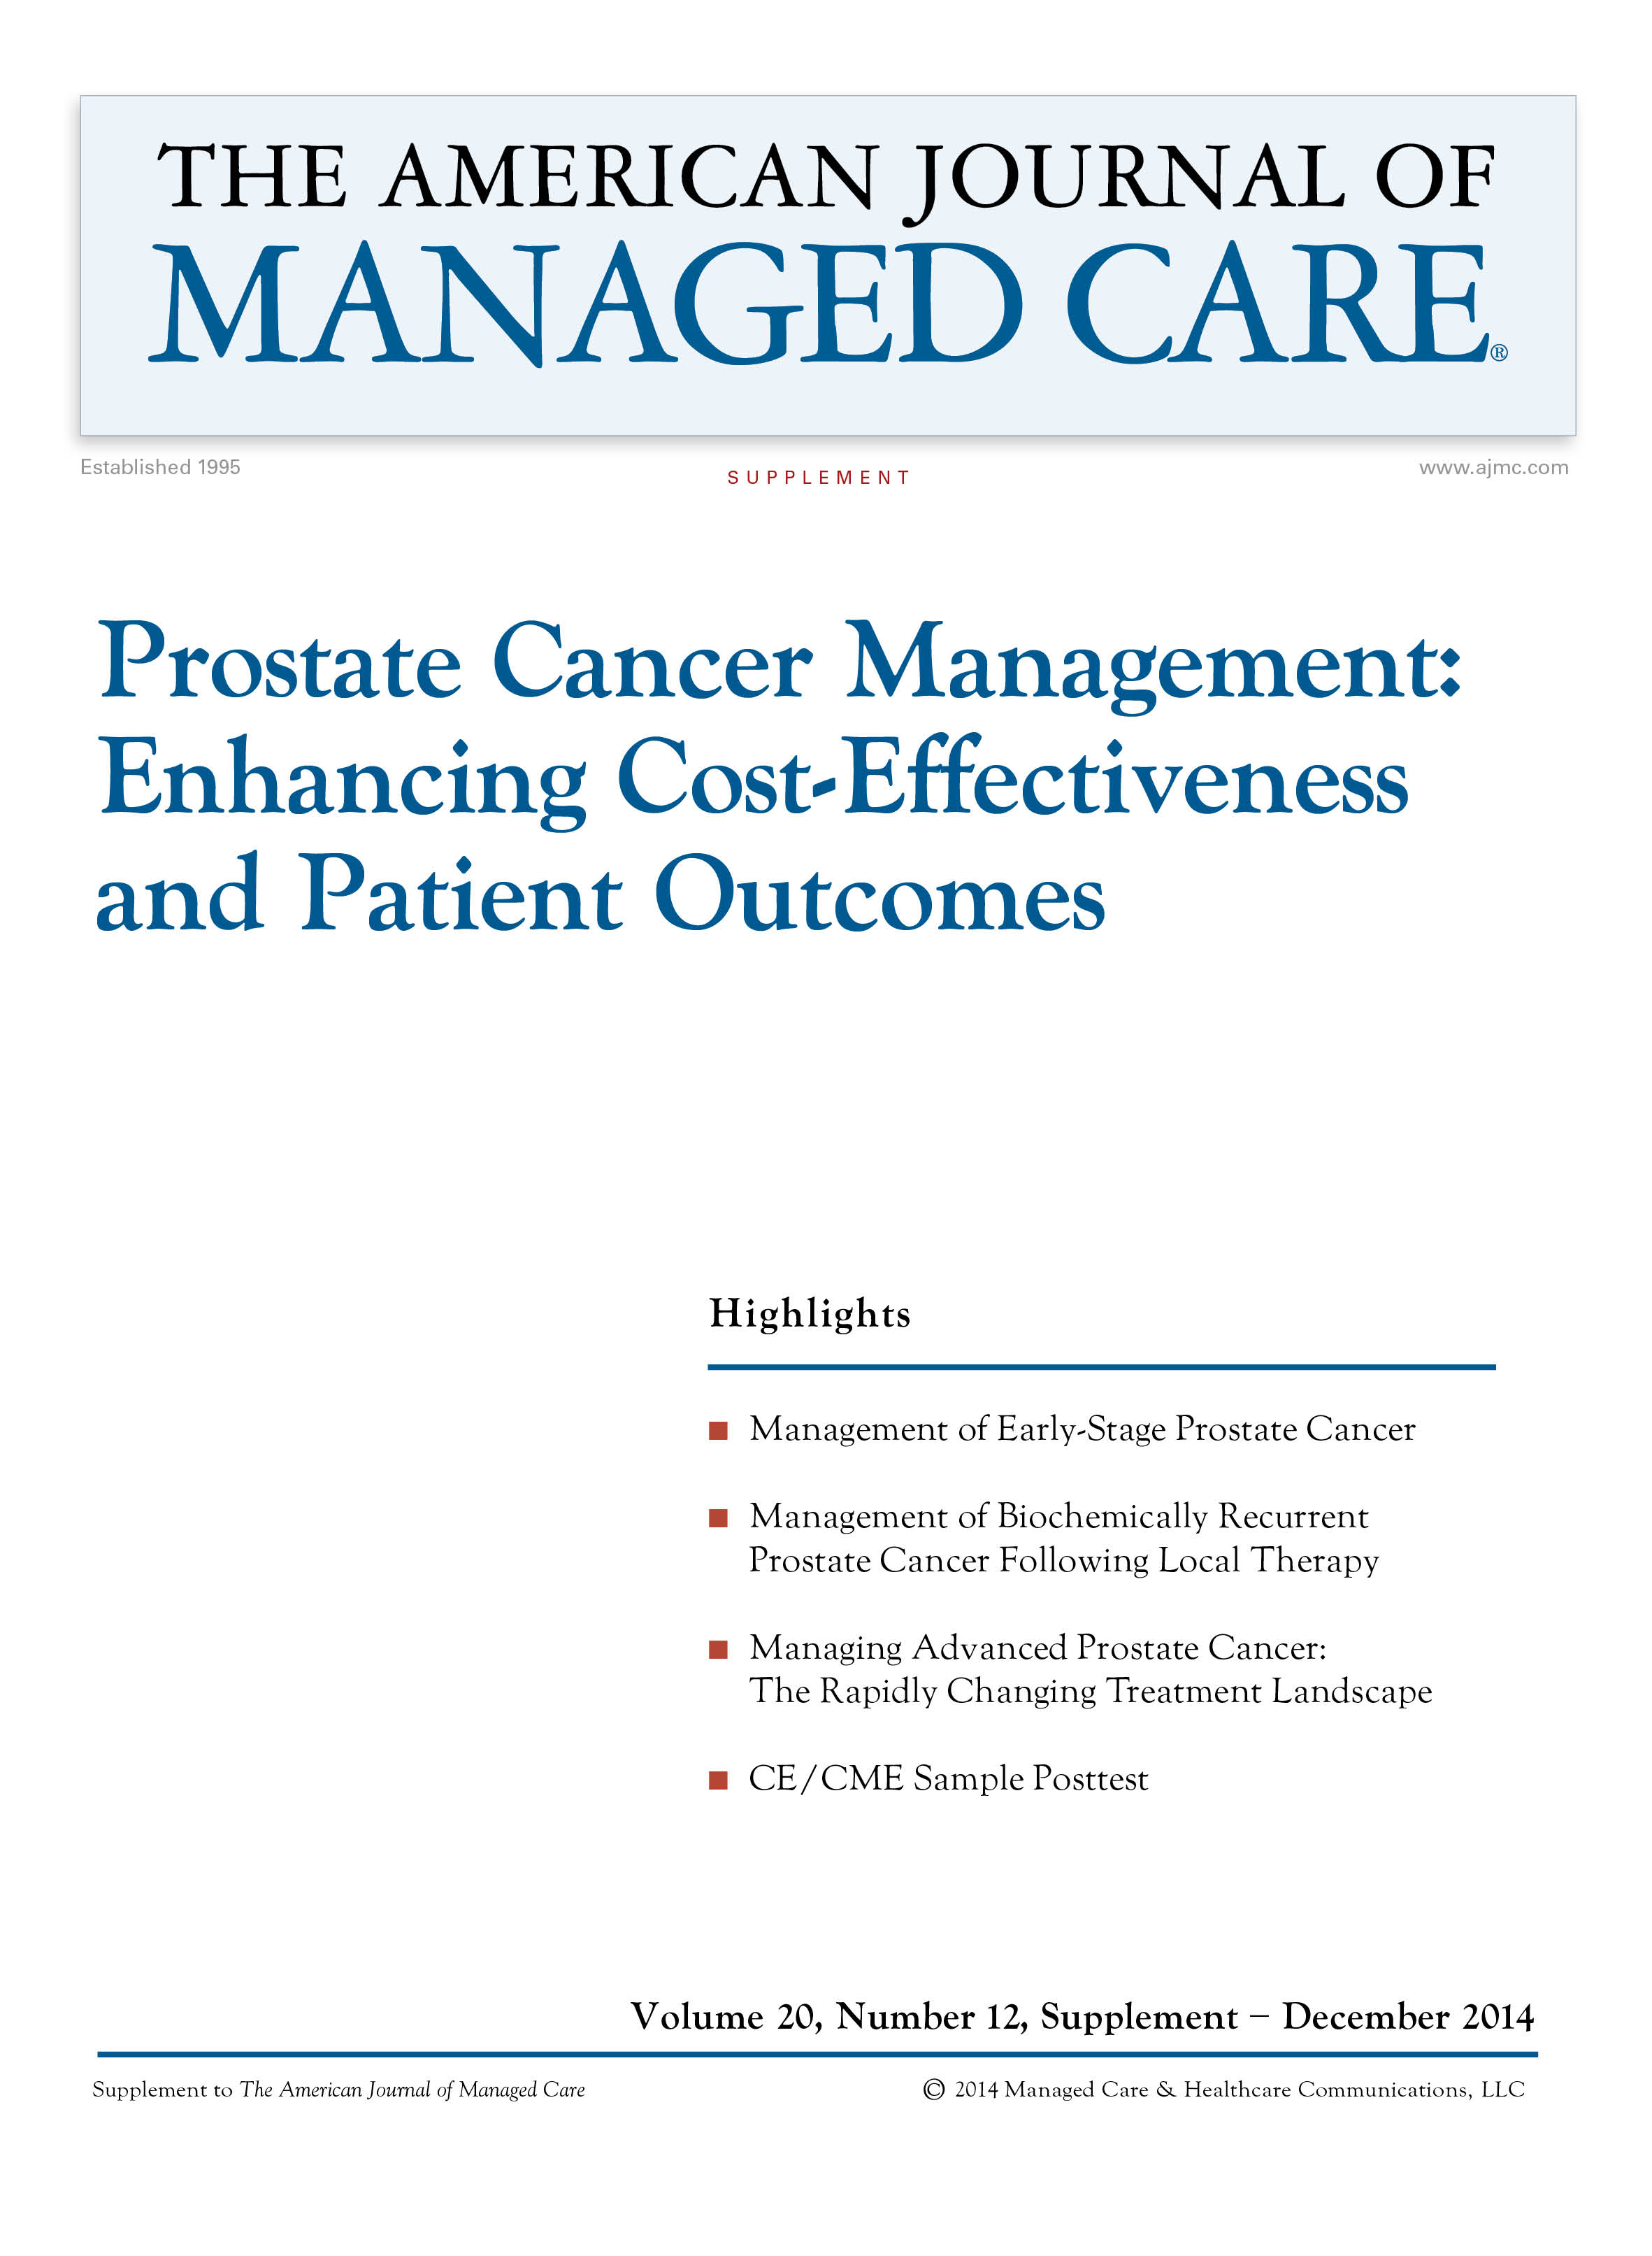 Prostate Cancer Management: Enhancing Cost-Effectiveness and Patient Outcomes [CME/CPE]